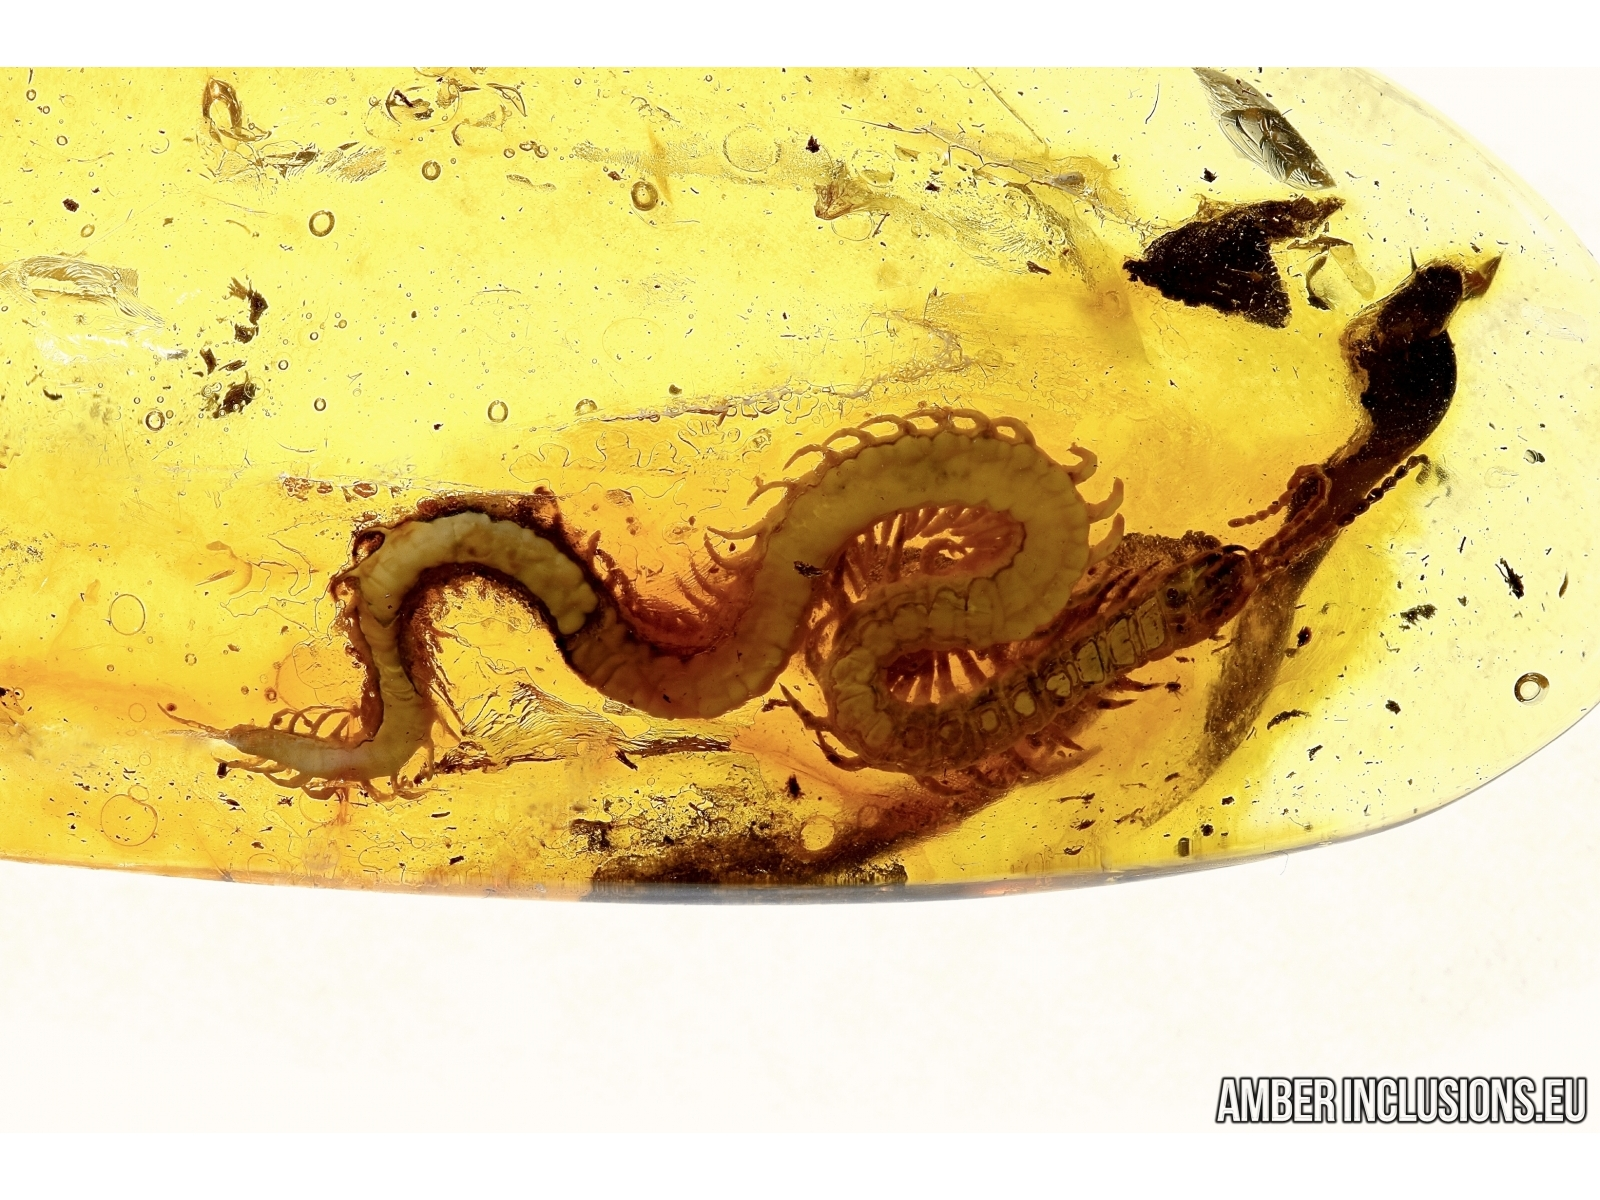 Fossil inclusion in Baltic amber #5477